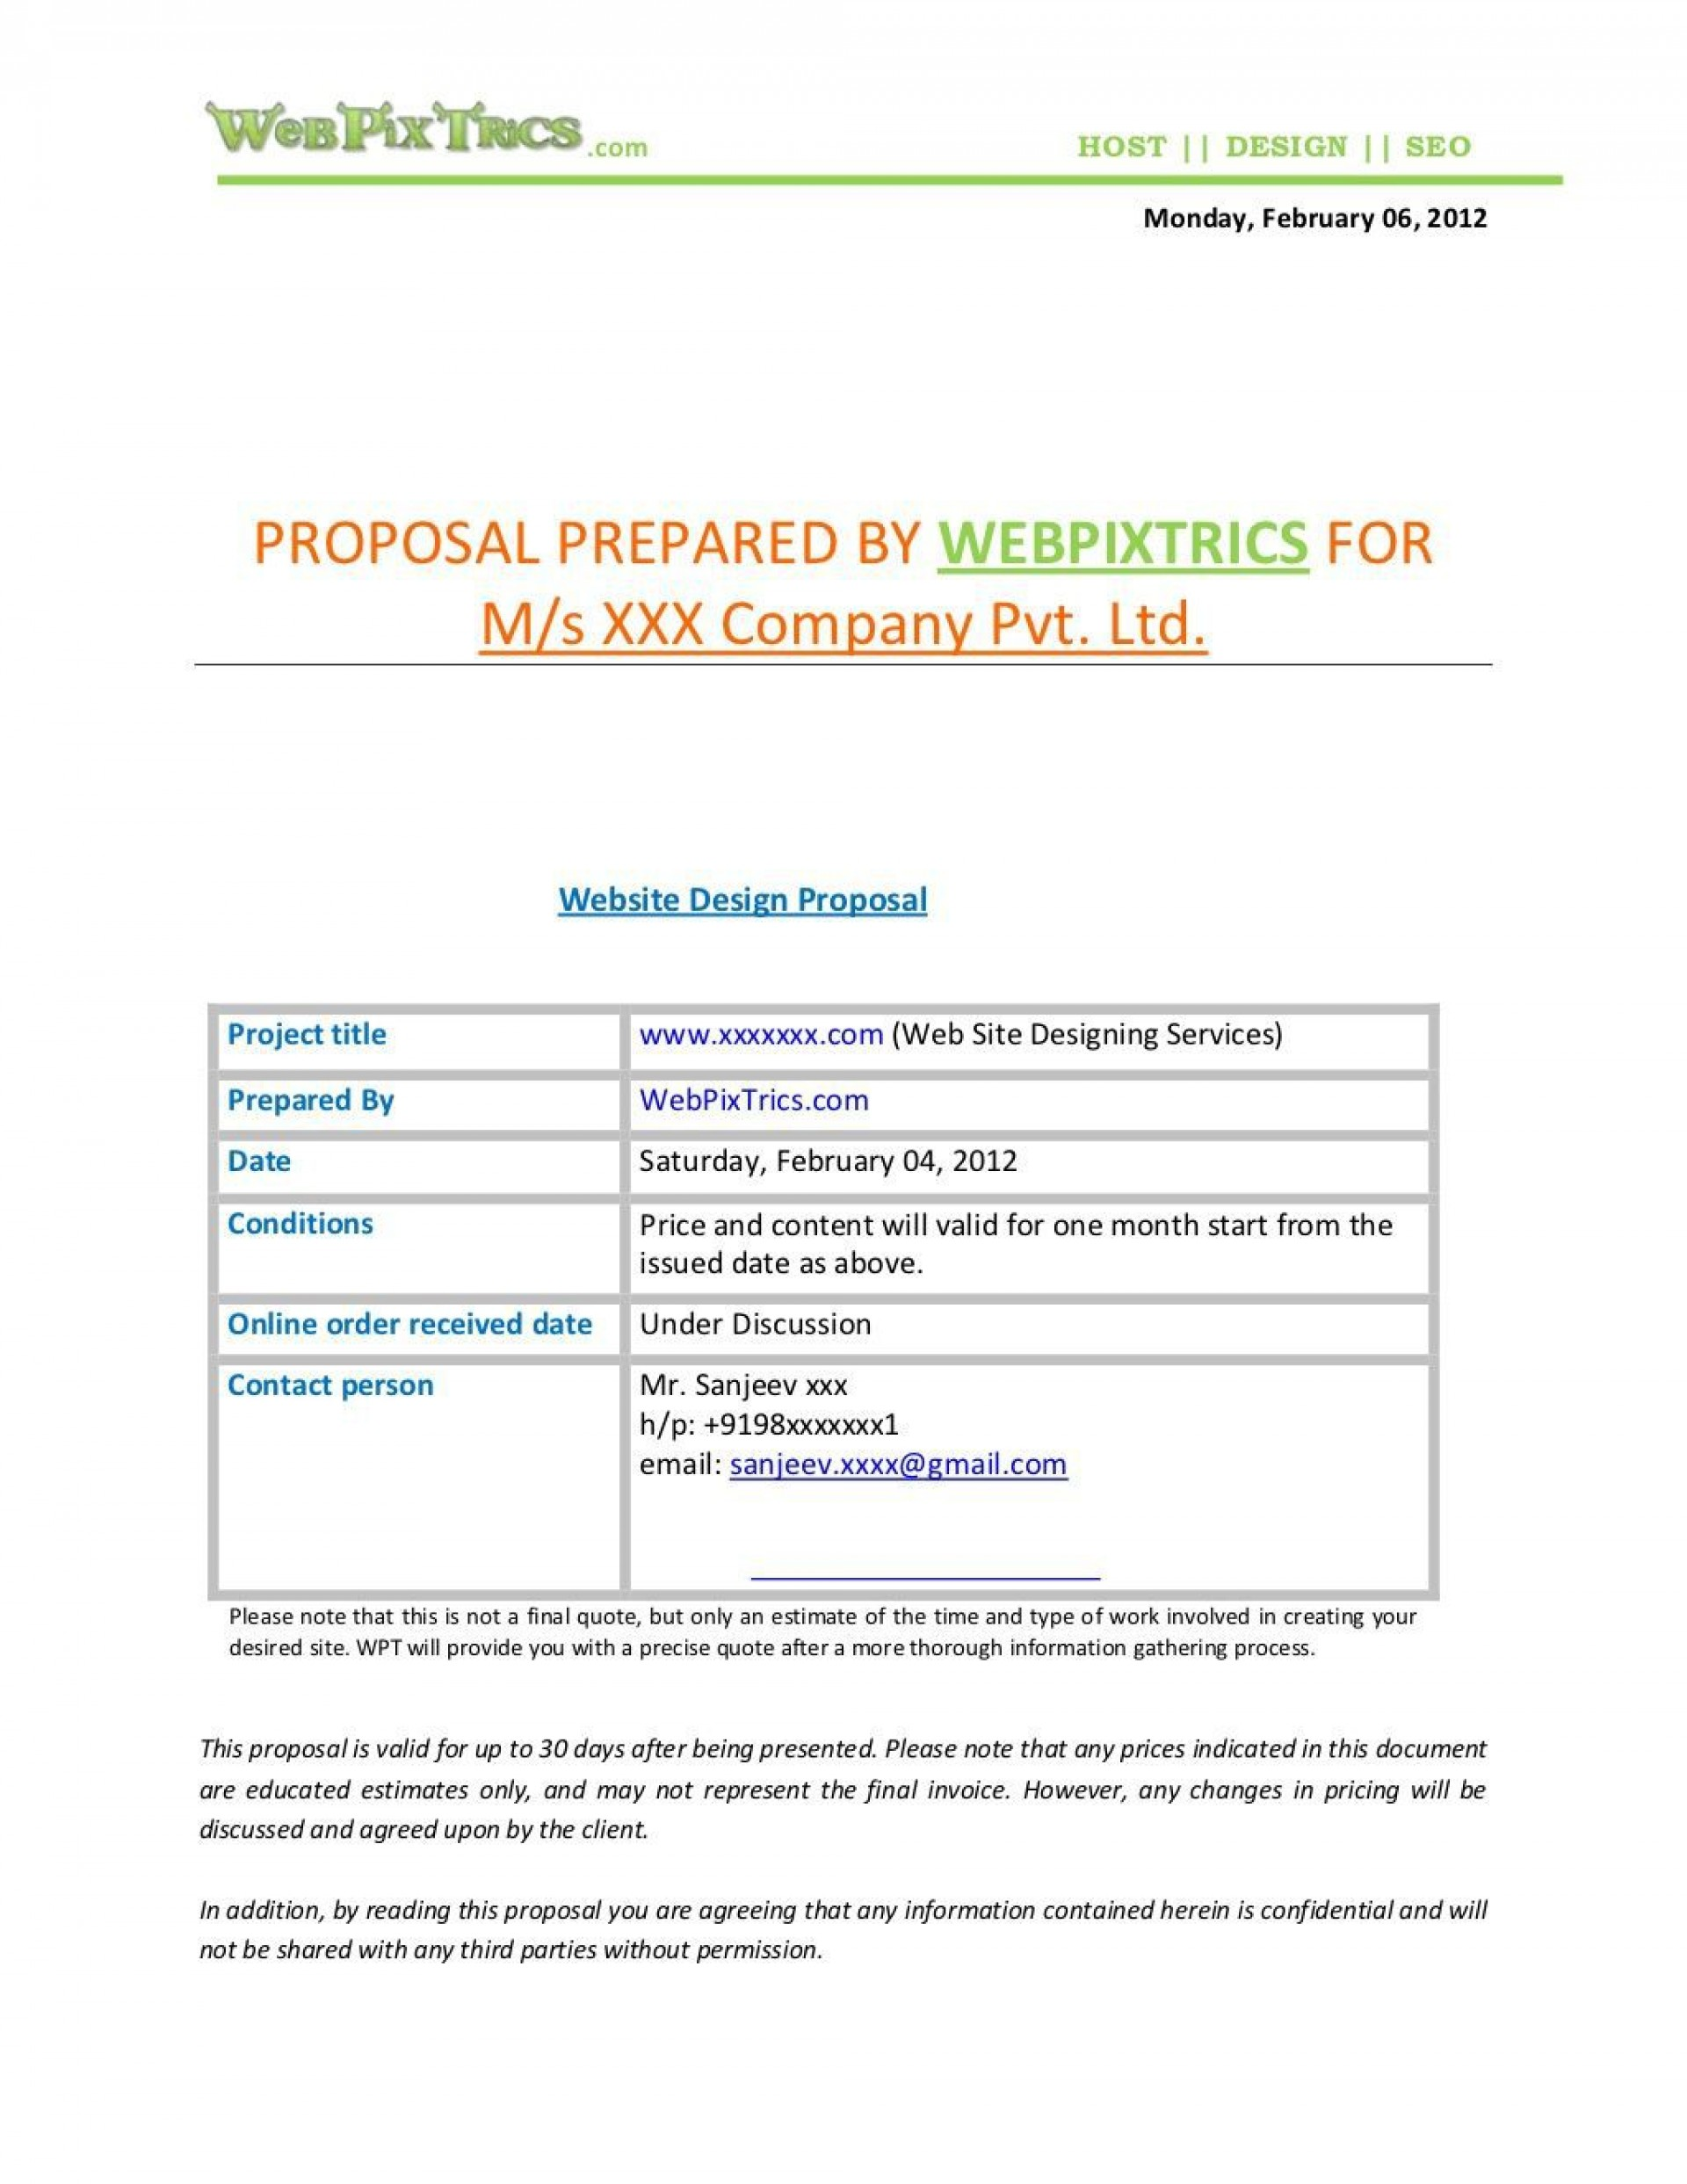 005 Impressive Website Design Proposal Template Sample  Web Pdf Redesign1920